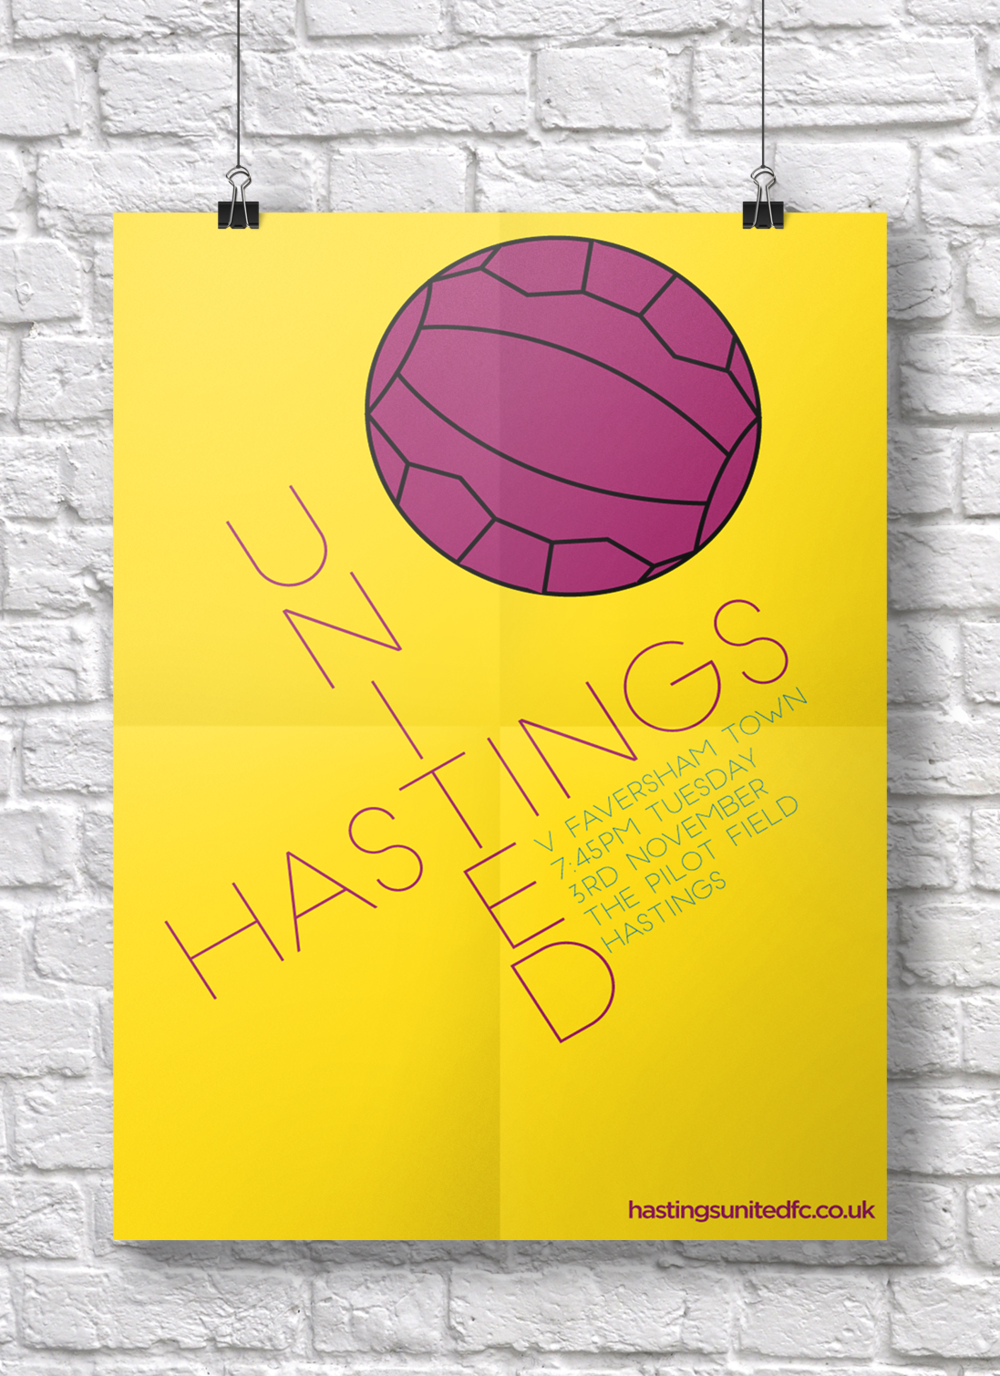 Hastings_FC_FAVERSHAM_hang.png